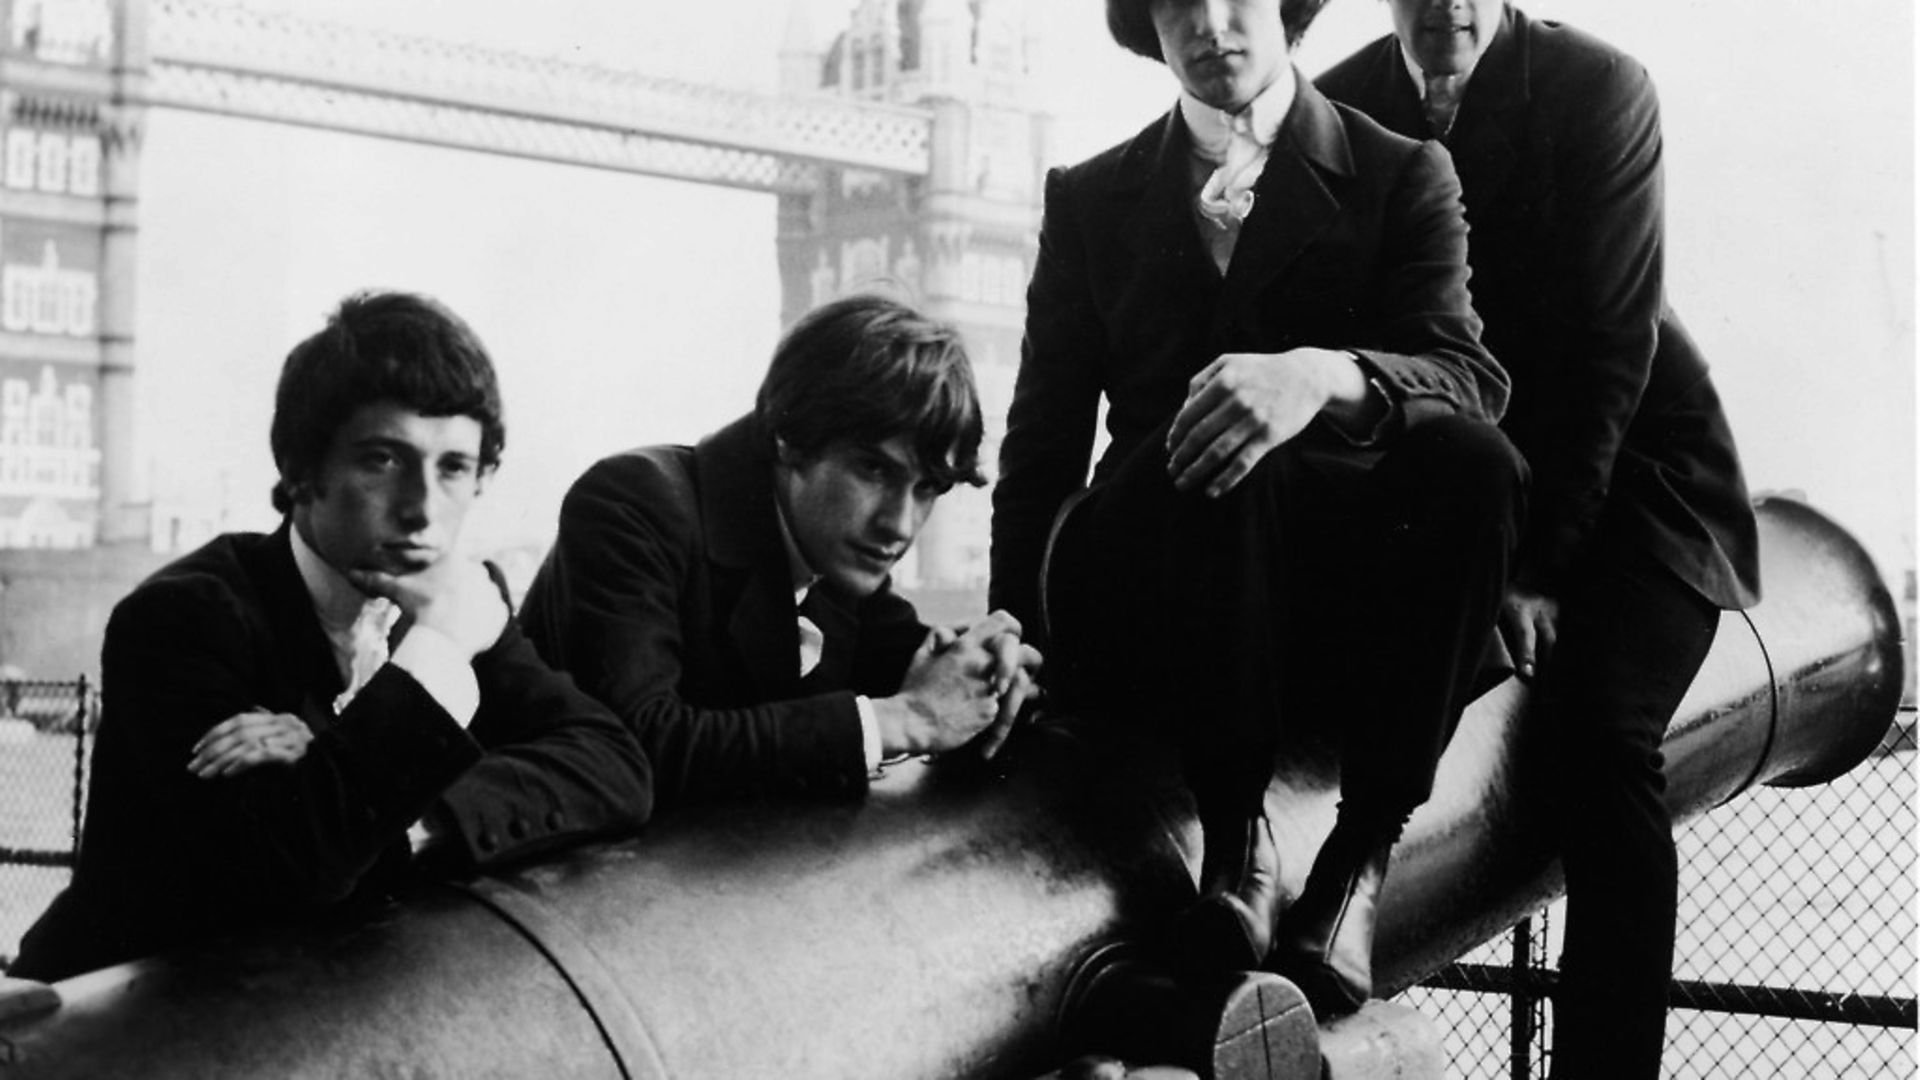 The Kinks, (L-R)  Peter Quaife, Ray Davies, Dave Davies, and Mick Avory in London, England, 1966. Photo: Reprise Records/Warner Bros./Courtesy of Getty Images - Credit: Getty Images